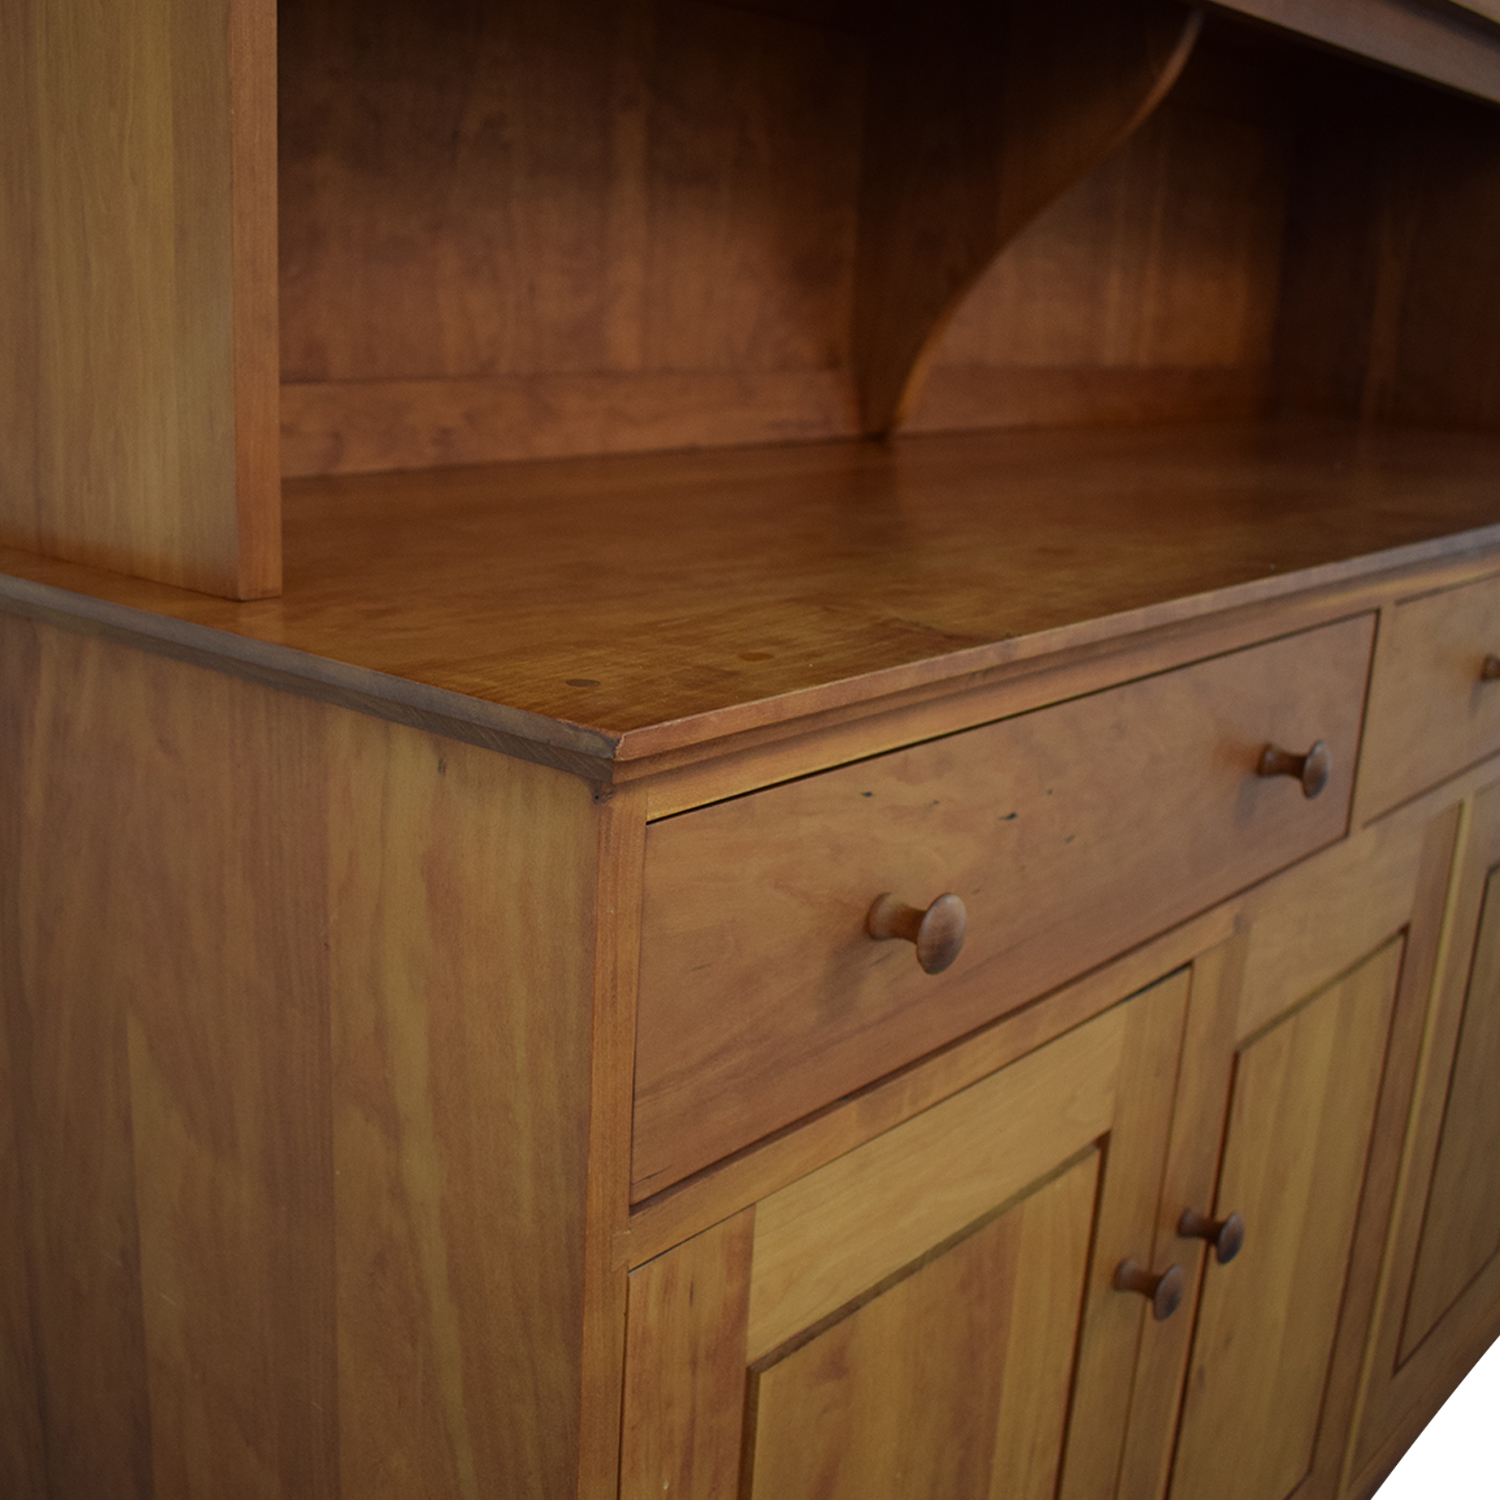 Thorn & Company Hutch / Cabinets & Sideboards